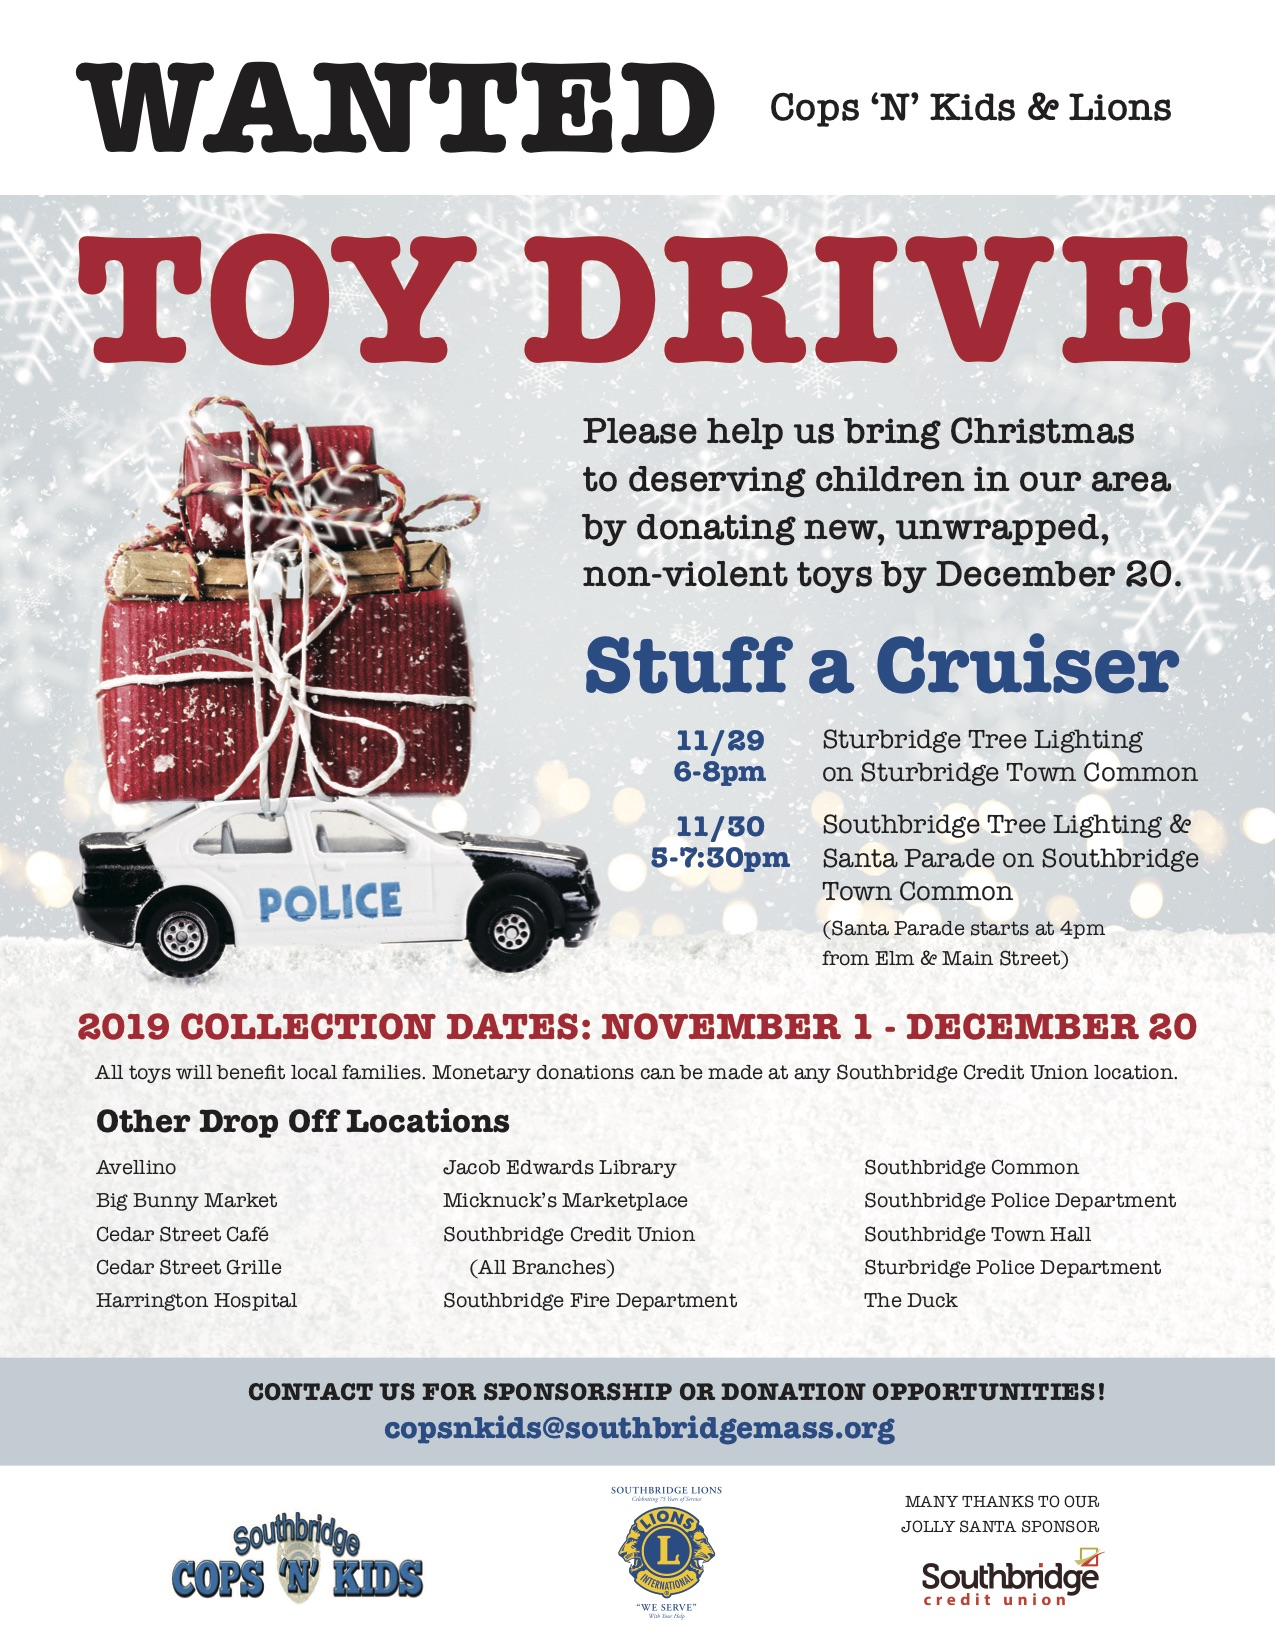 Toy drive underway in Southbridge area